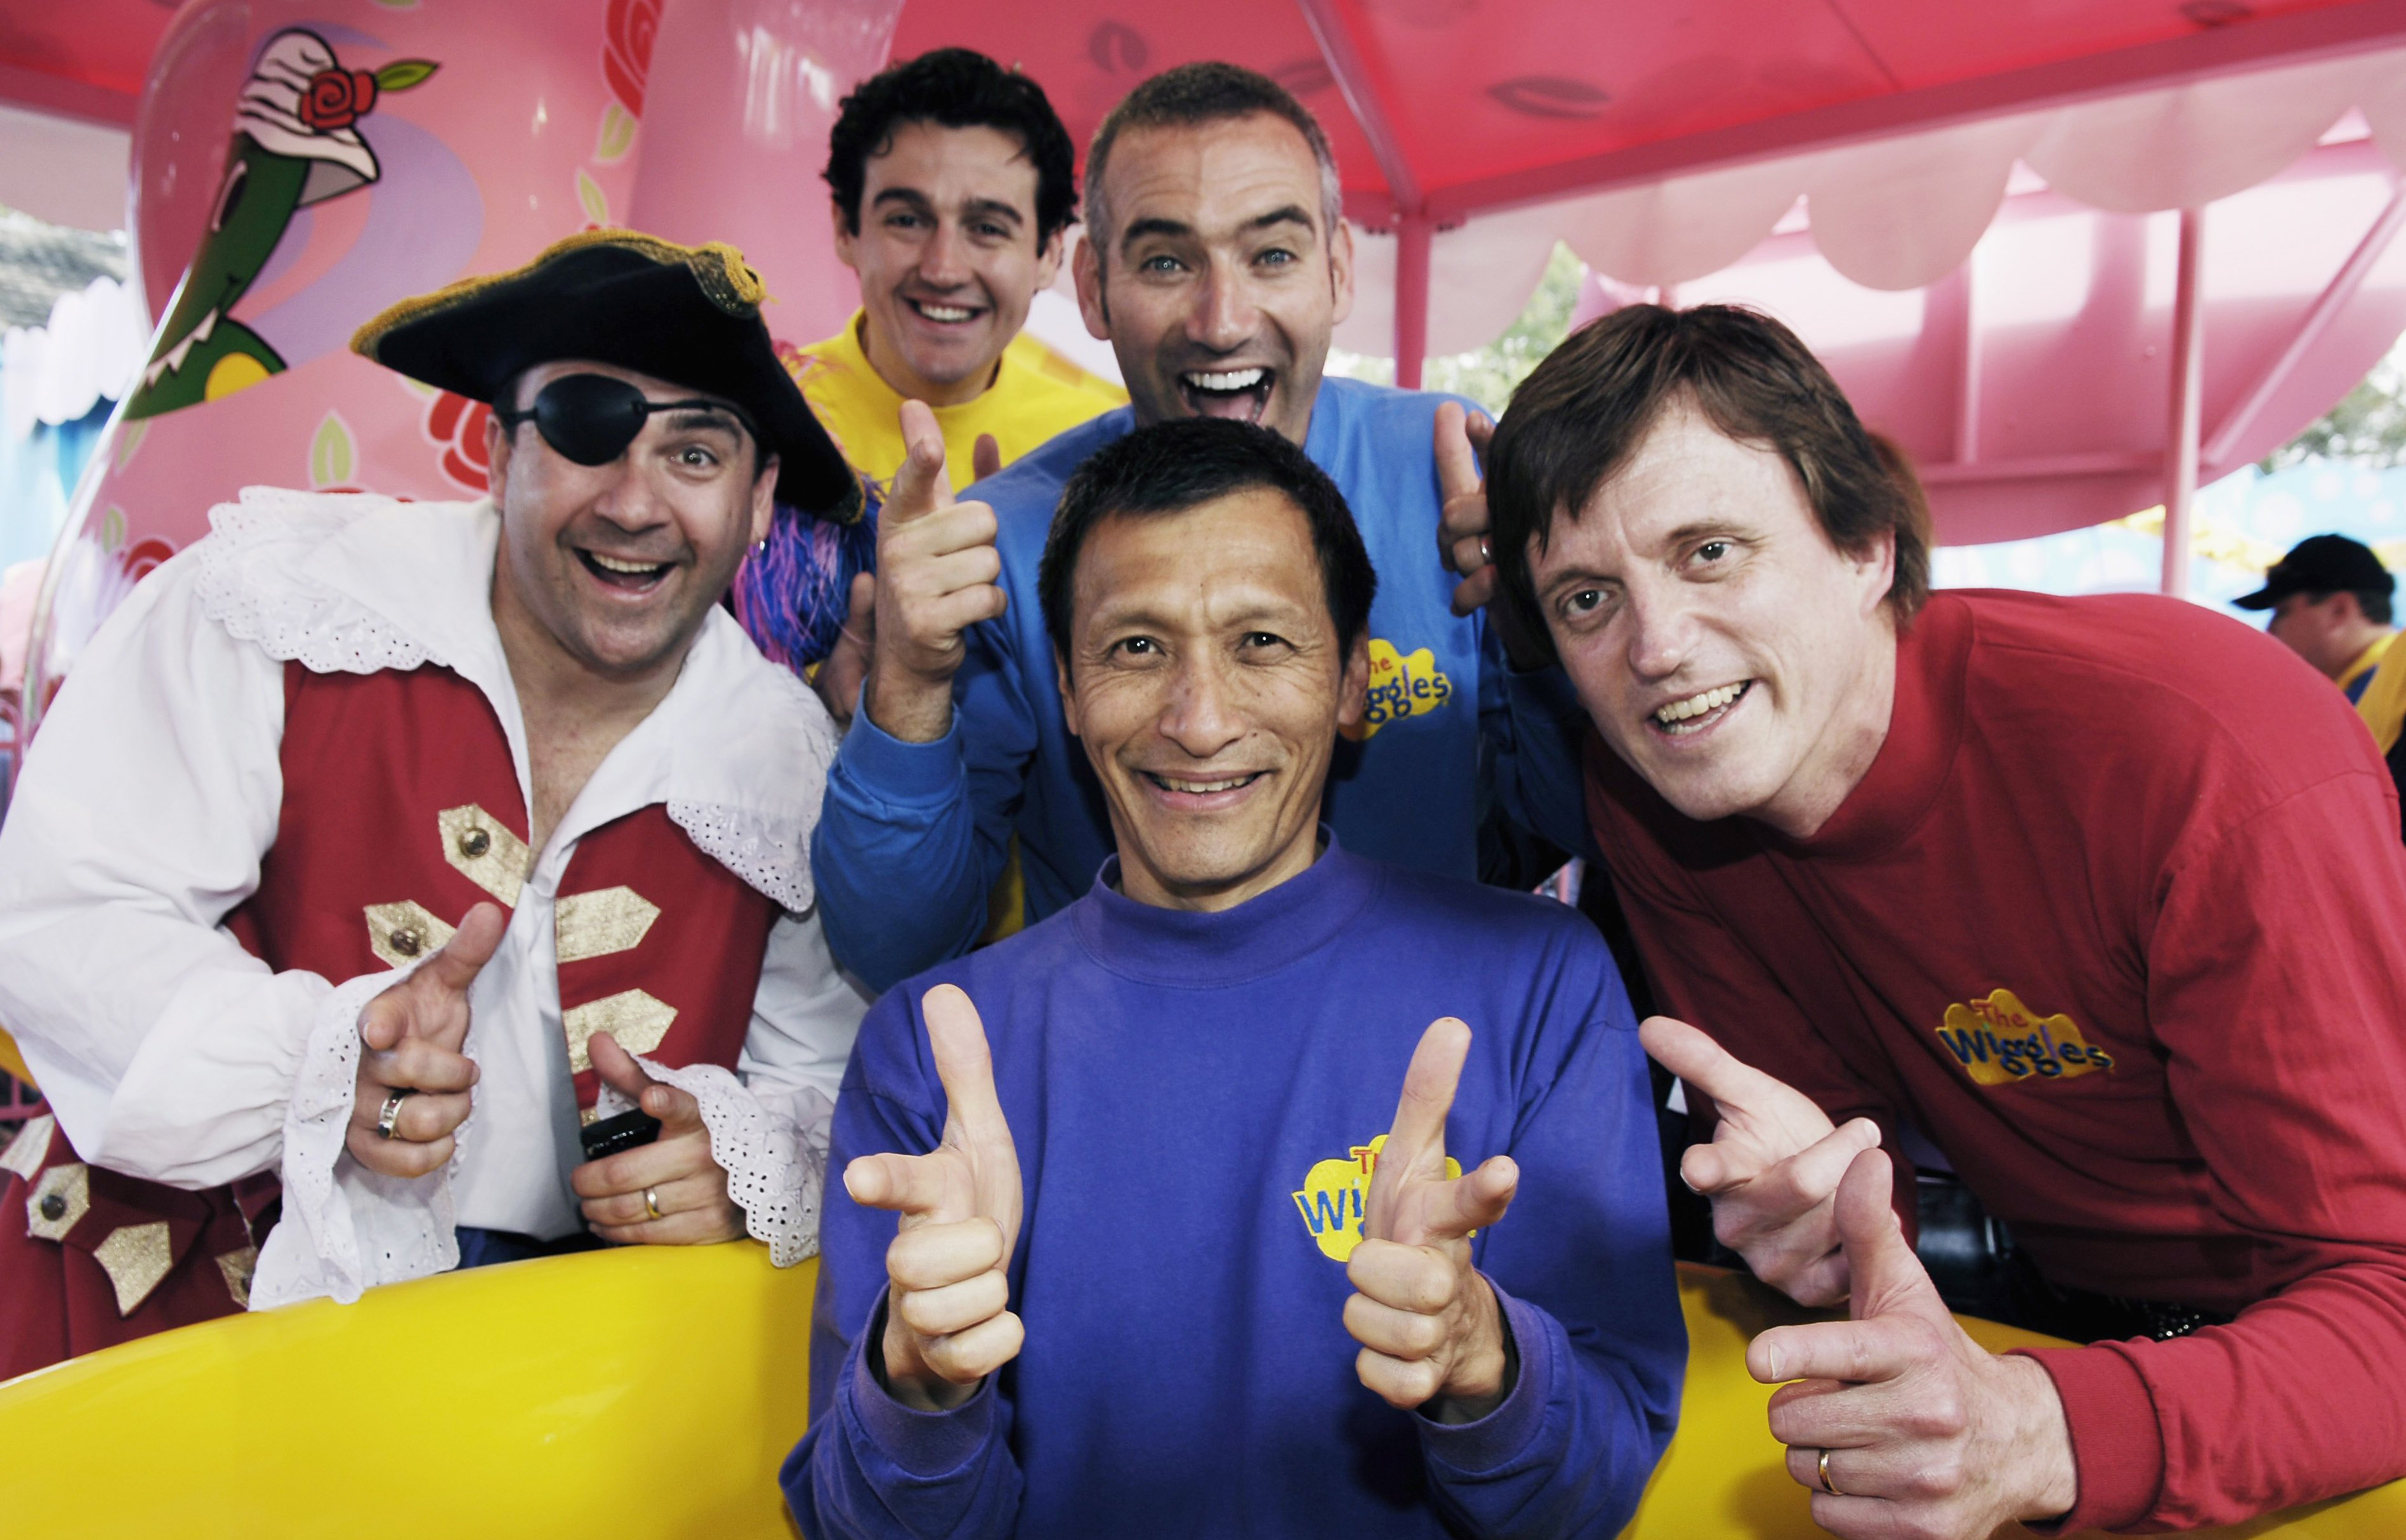 The heartbreaking story of how The Wiggles started out ...